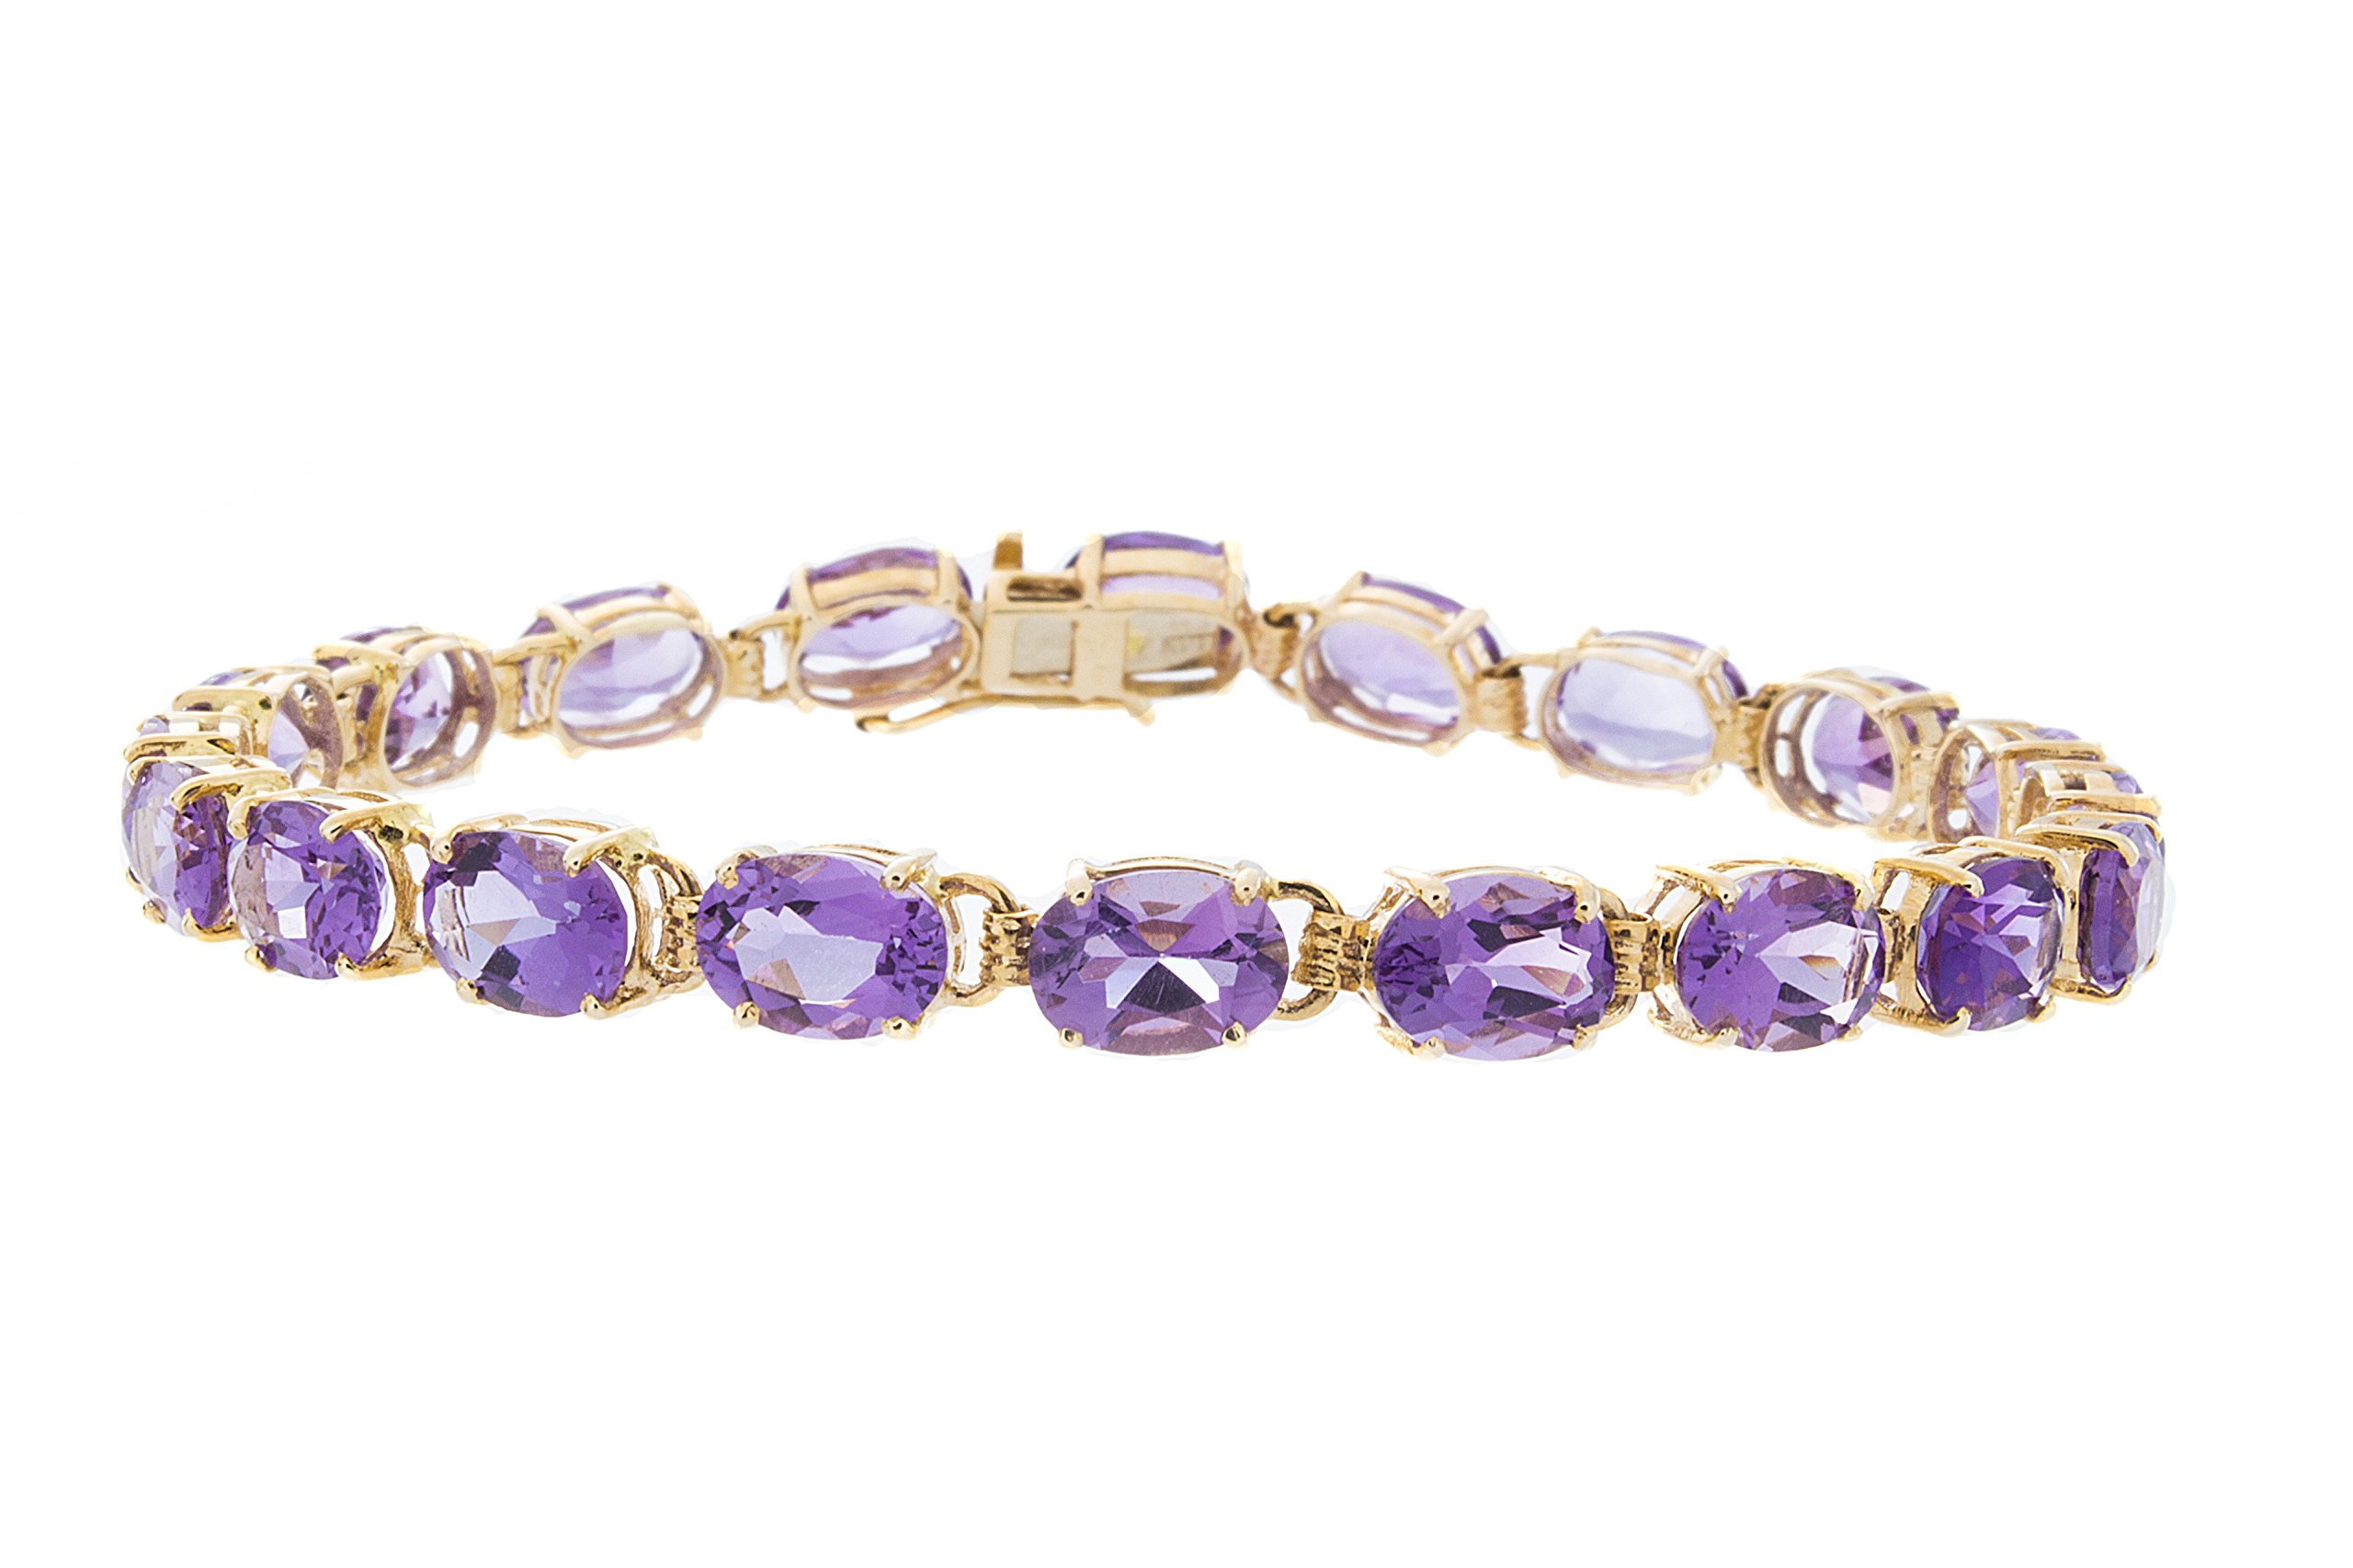 ISAAC WESTMAN 14K Yellow Gold Amethyst Tennis Bracelet, 7.25'' by ISAAC WESTMAN